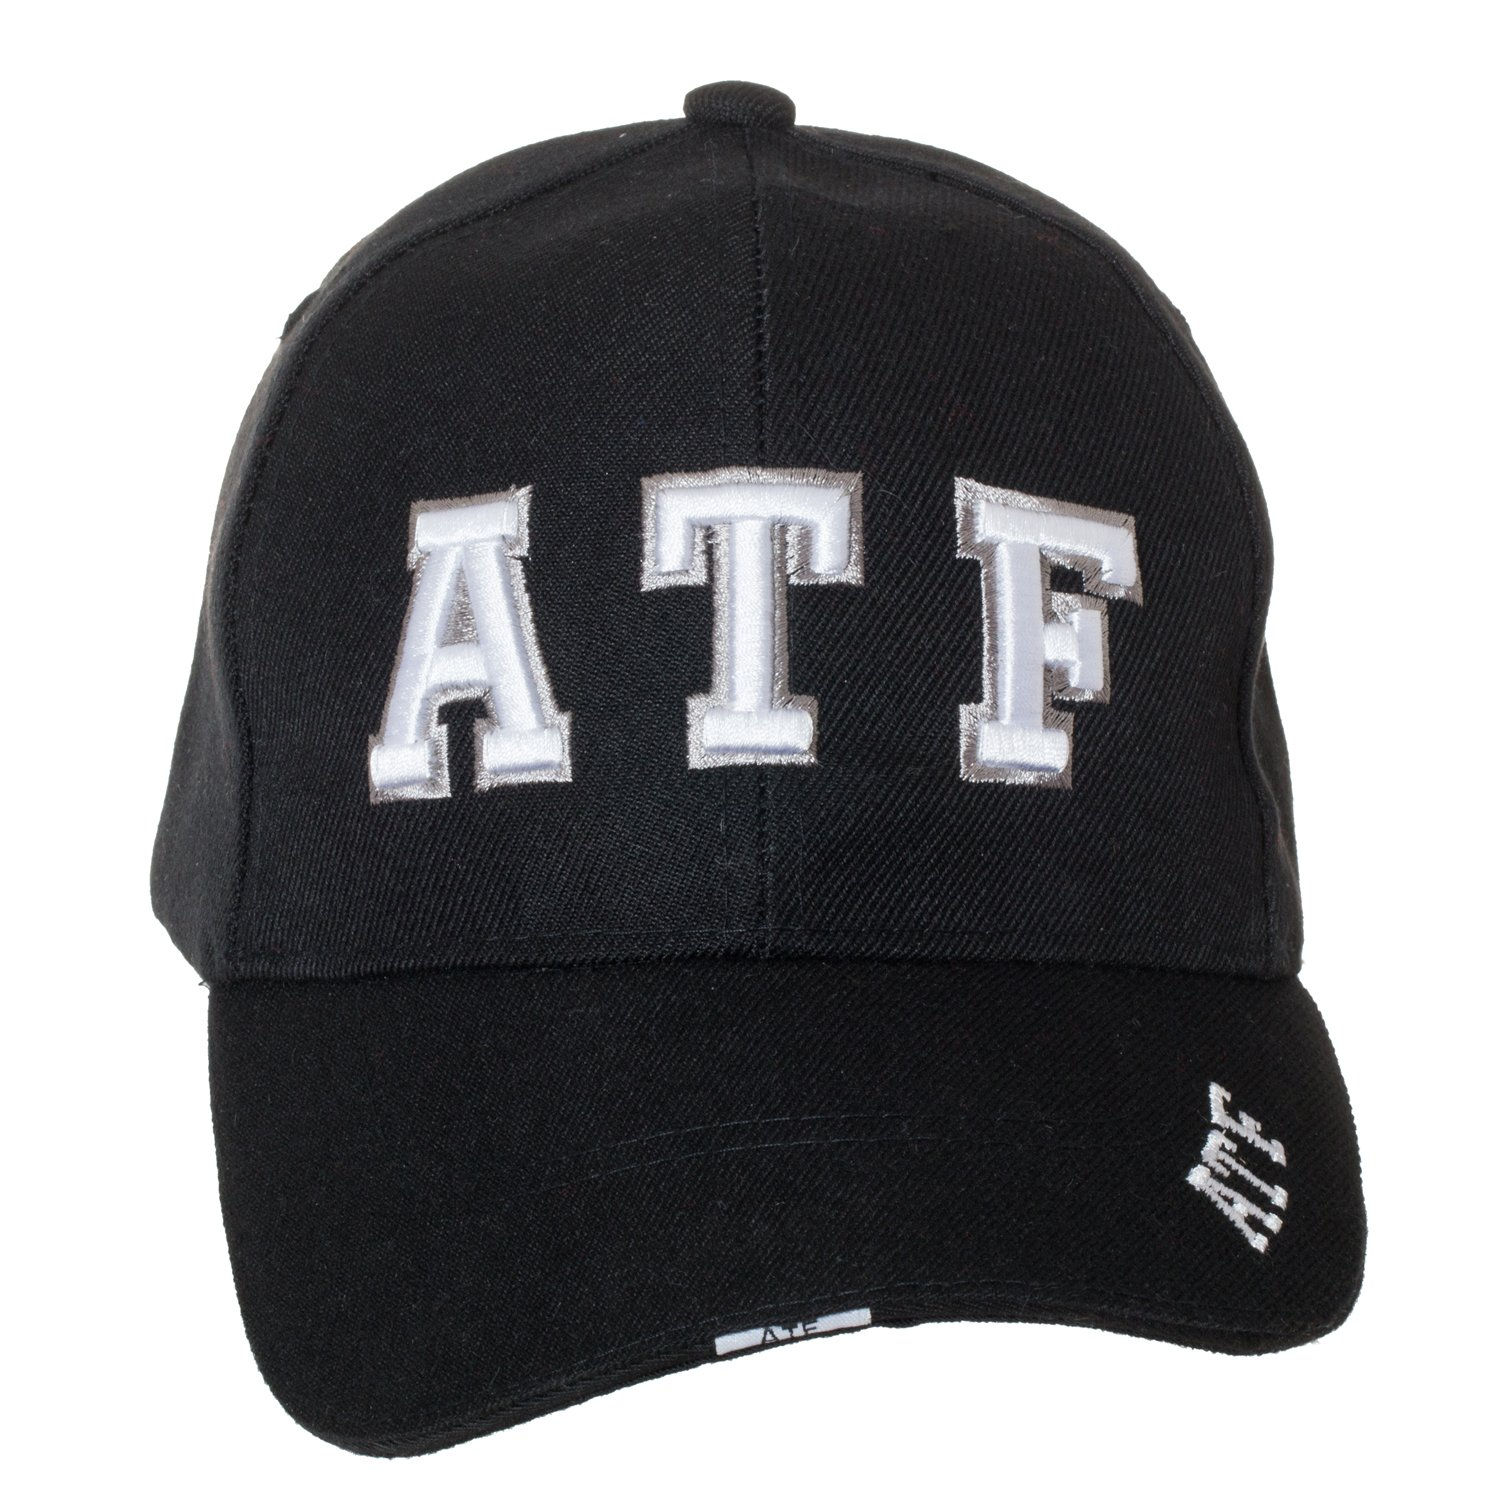 Amazon.com  ATF (Alcohol Tobacco Firearms) Deluxe Black Embroidered Law  Enforcement Security Novelty Baseball Caps (ATF)  Clothing d29fe2daf4e